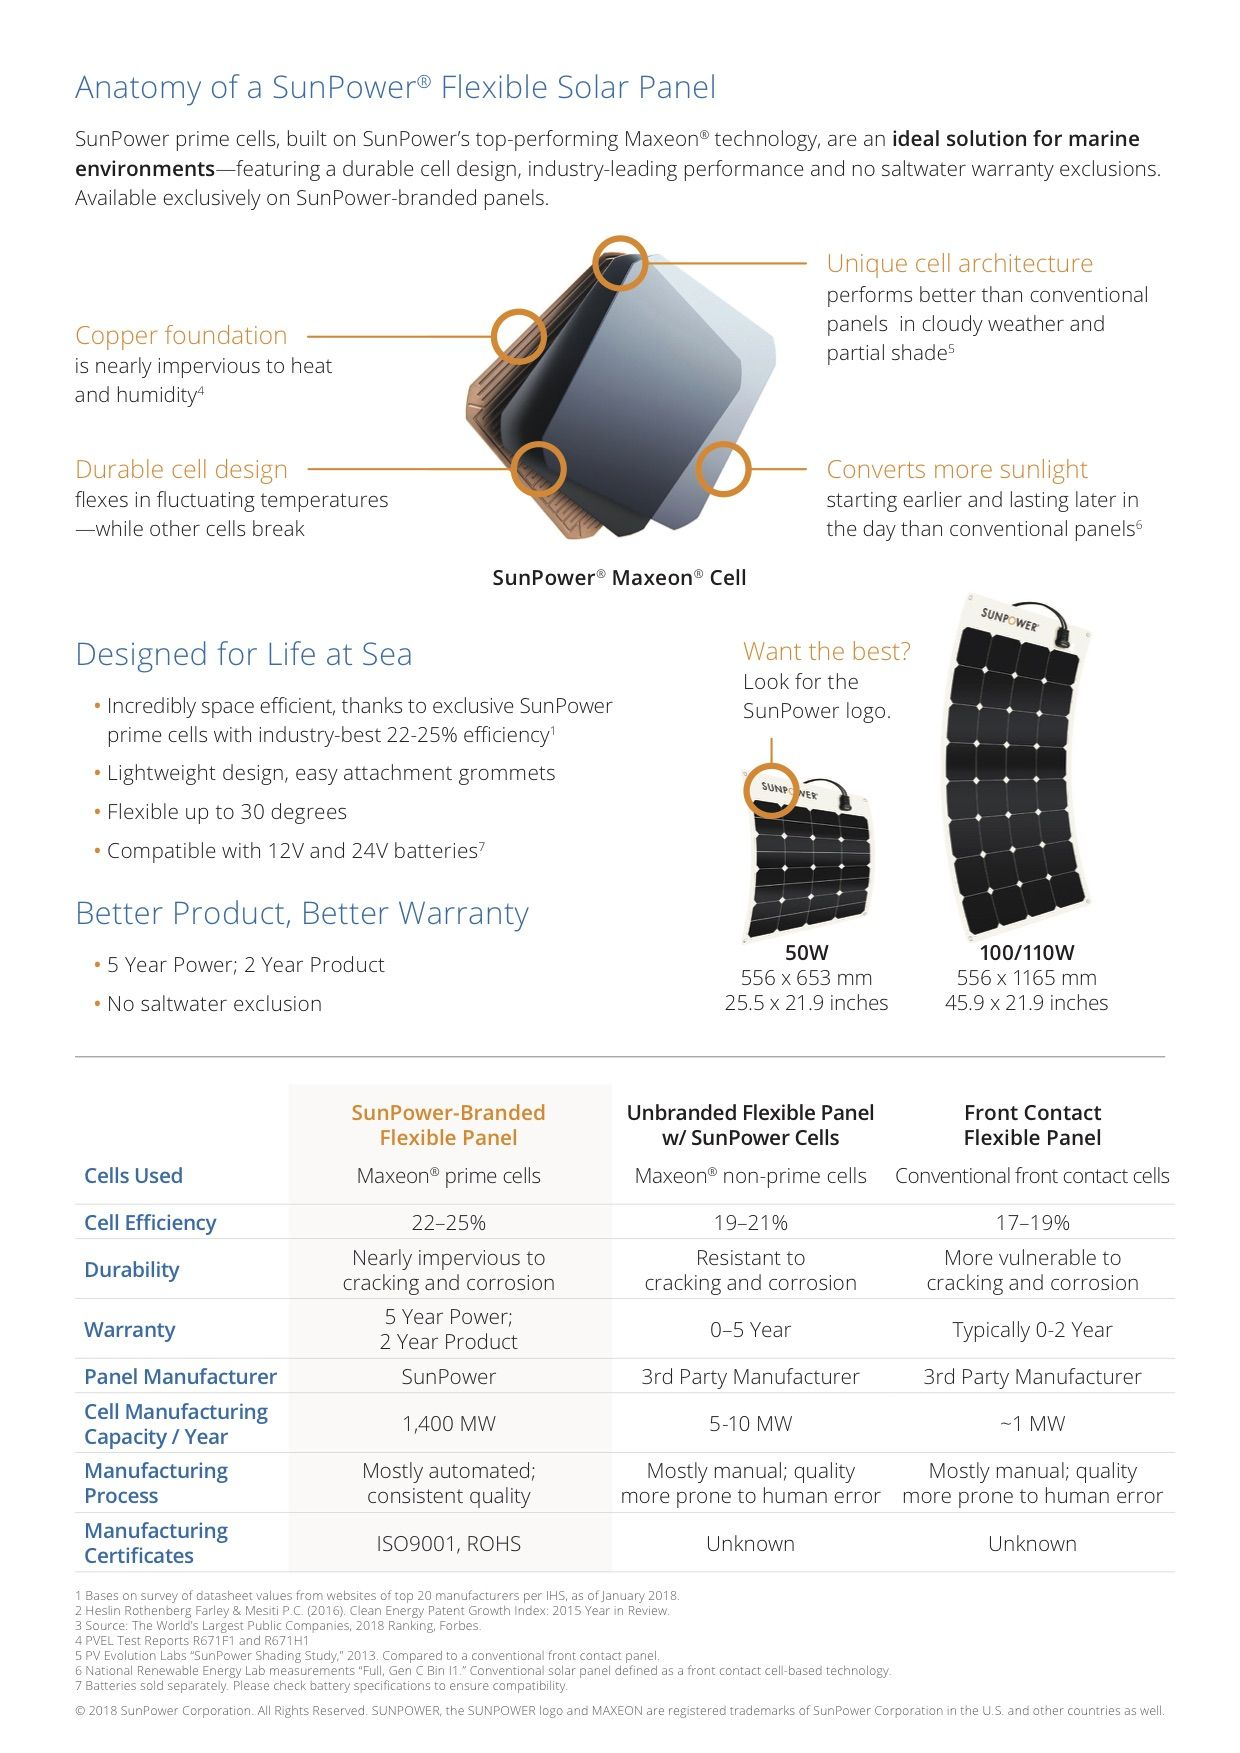 Page 2 of 2  Find out more on how the SunPower branded flexible